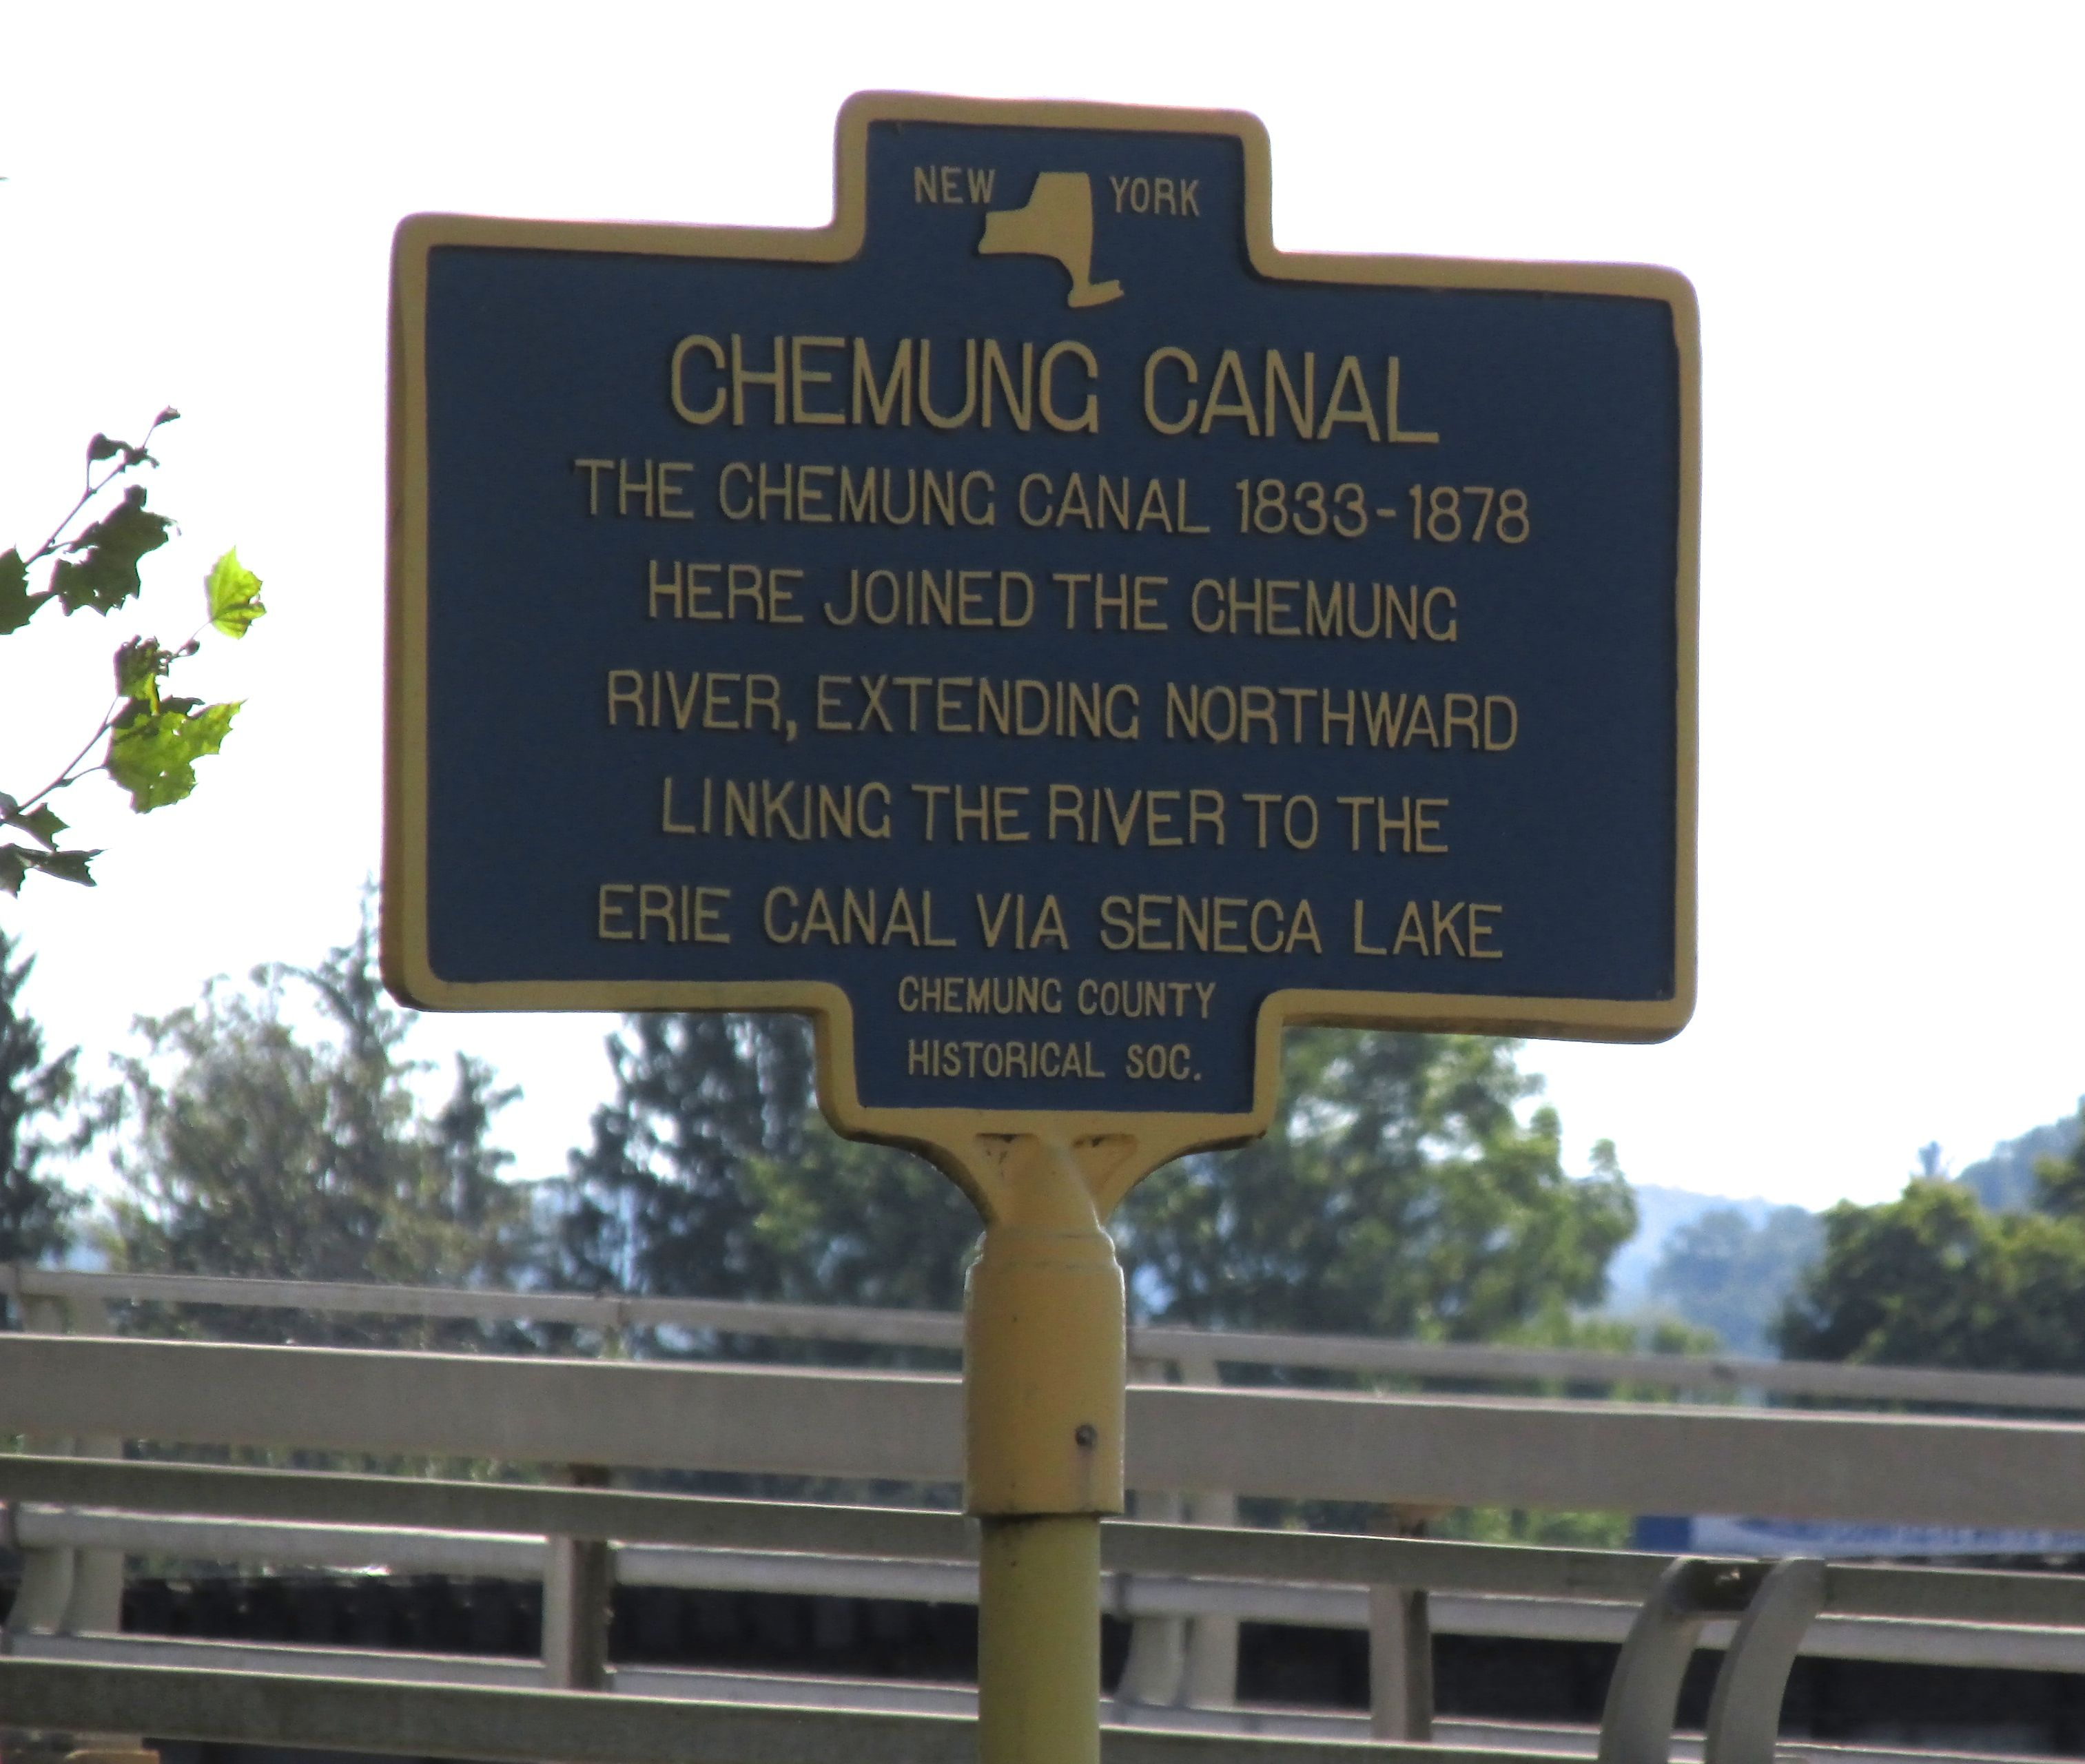 Yet another marker for the Chemung Canal!